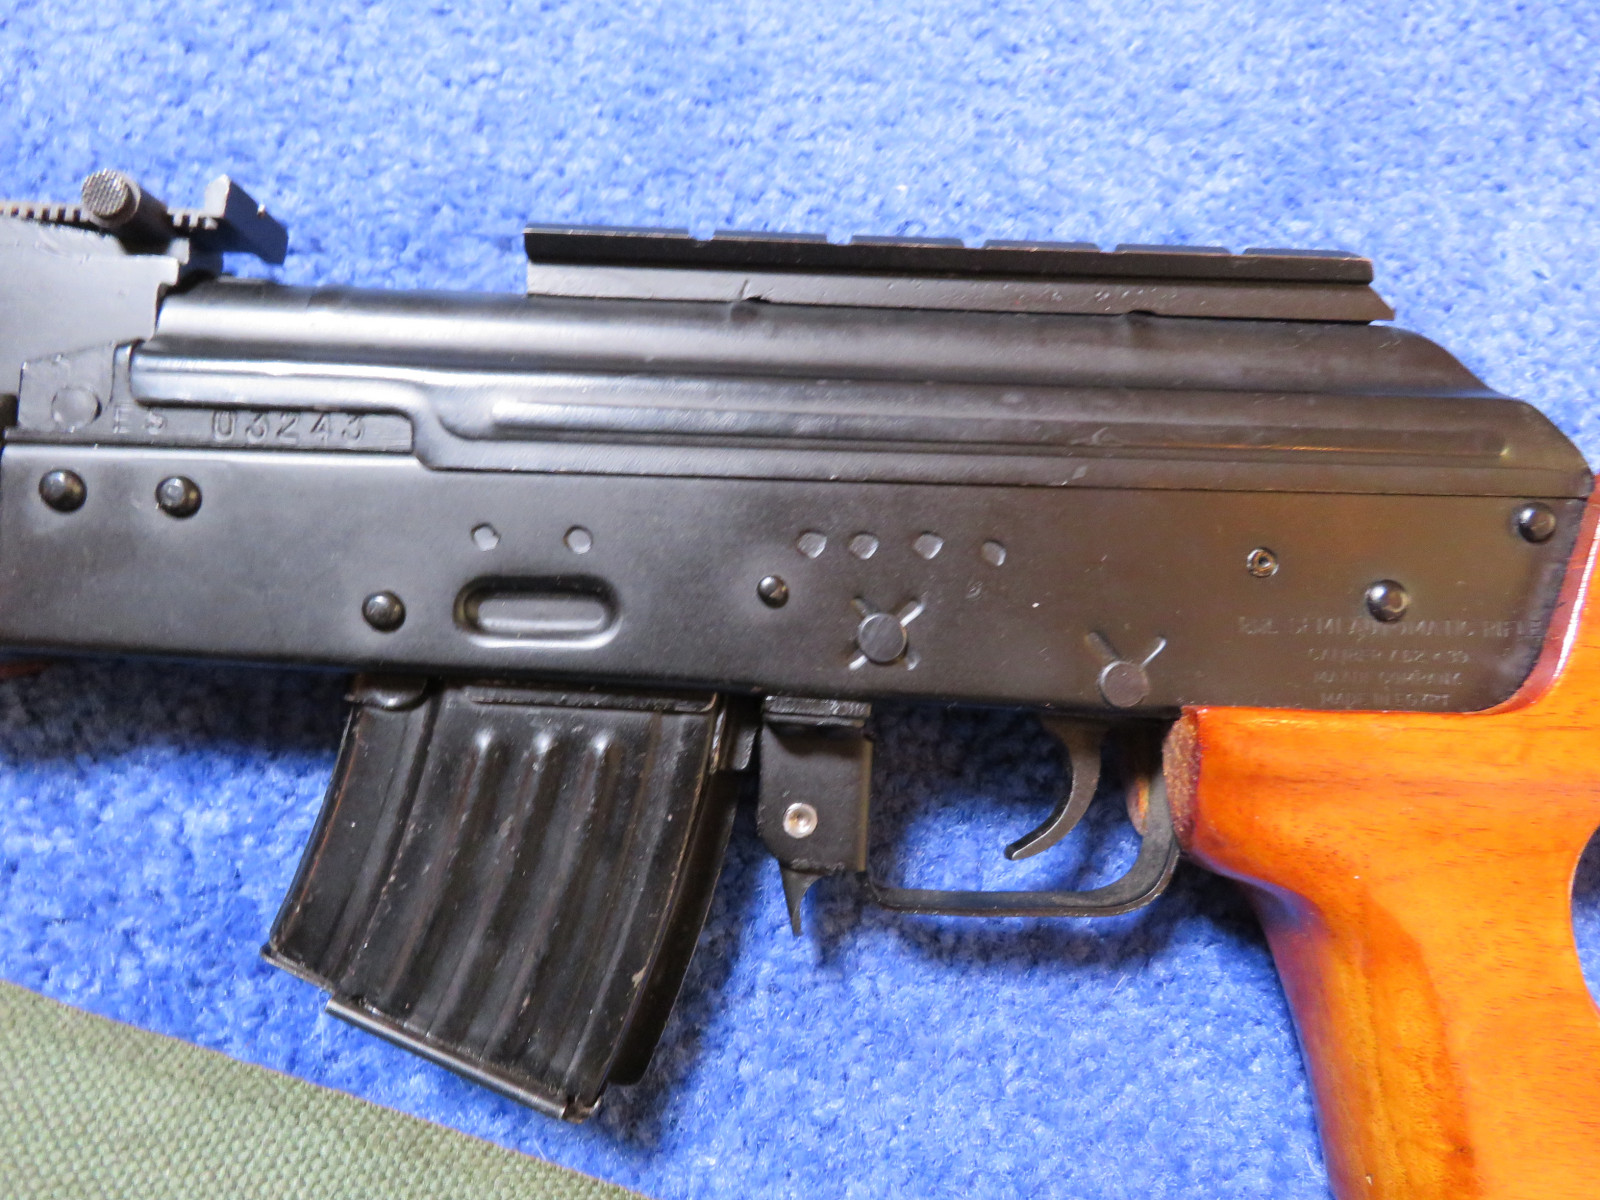 MAADI Corporation      AK-47 Semi-Automatic Rifle ES U3243 - Image 5